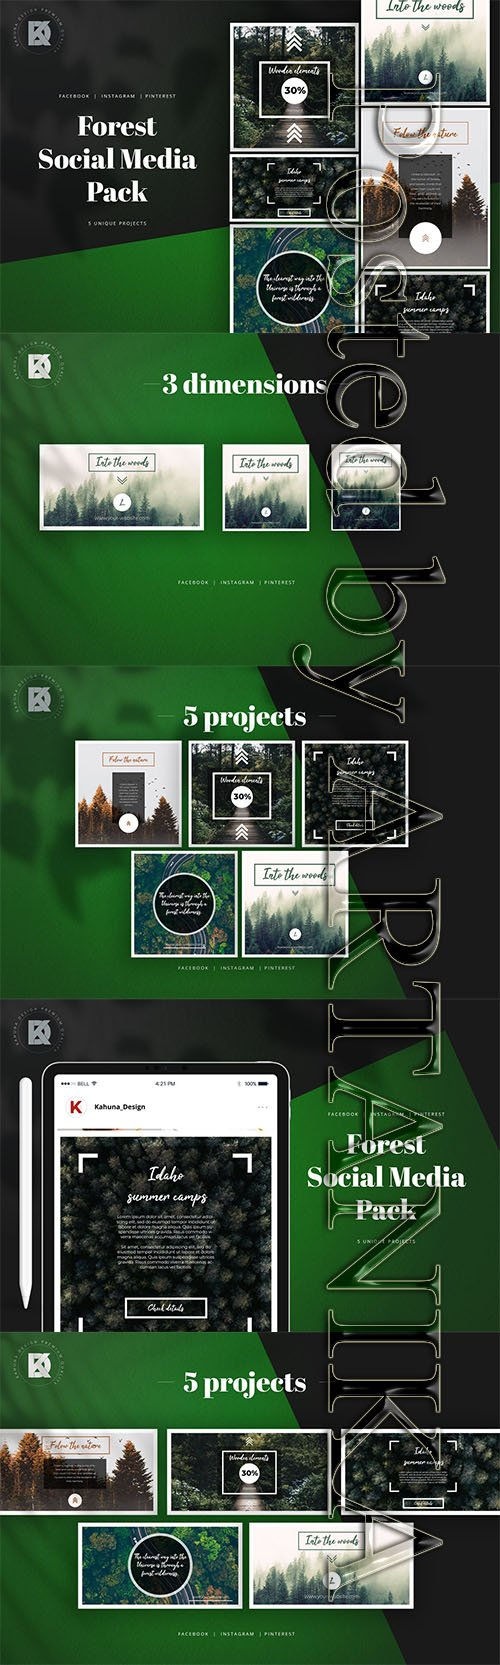 Forest Social Media Pack Template